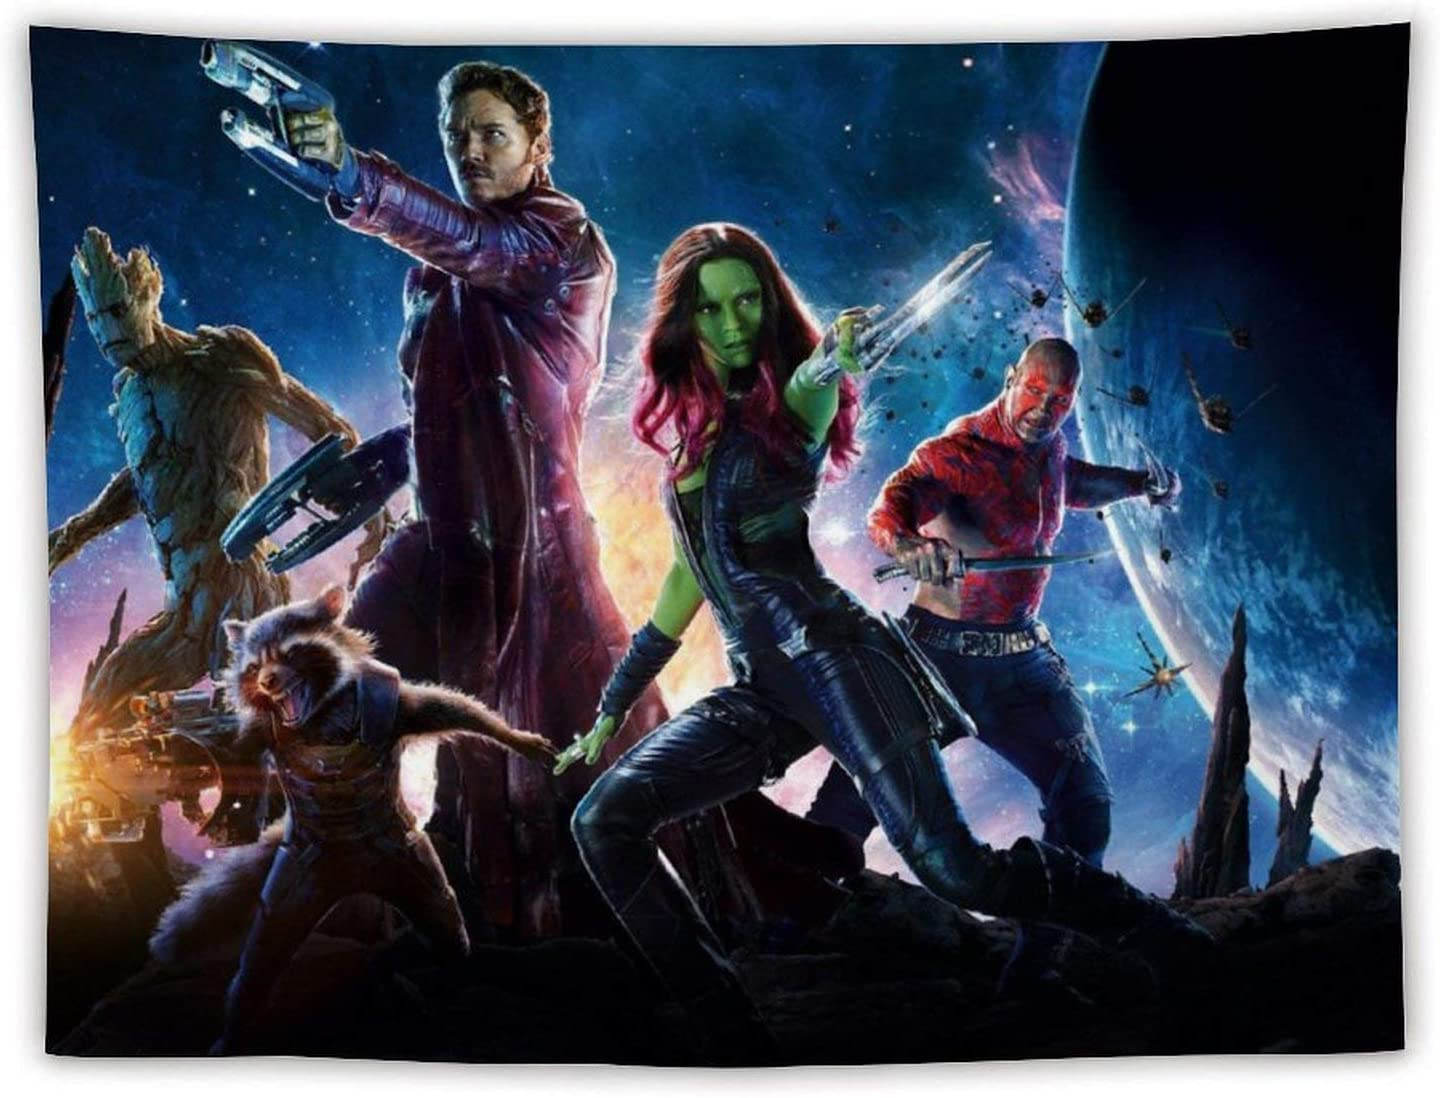 Tapestries Guar-dians of The Gal-axy Tapestry Bedroom Background Cloth Adult Tapestry Home Decor Living Room Kit(80in x60in)